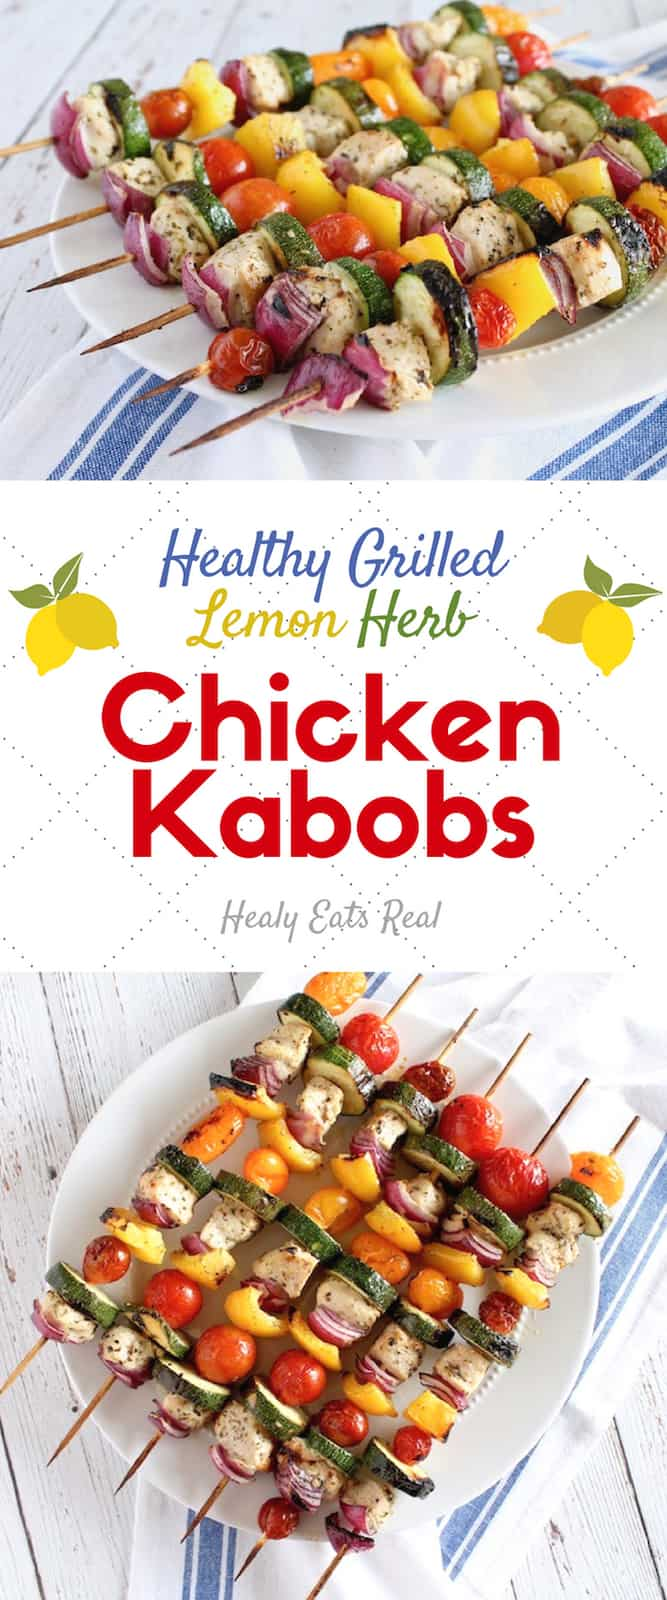 Lemon Herb Chicken Kabob Recipe (Keto & Paleo) - This marinated lemon herb chicken kabob recipe is the perfect summer recipe for the BBQ grill or oven! It's easy to make and bursting with fresh flavors. #kabobs #chicken #keto